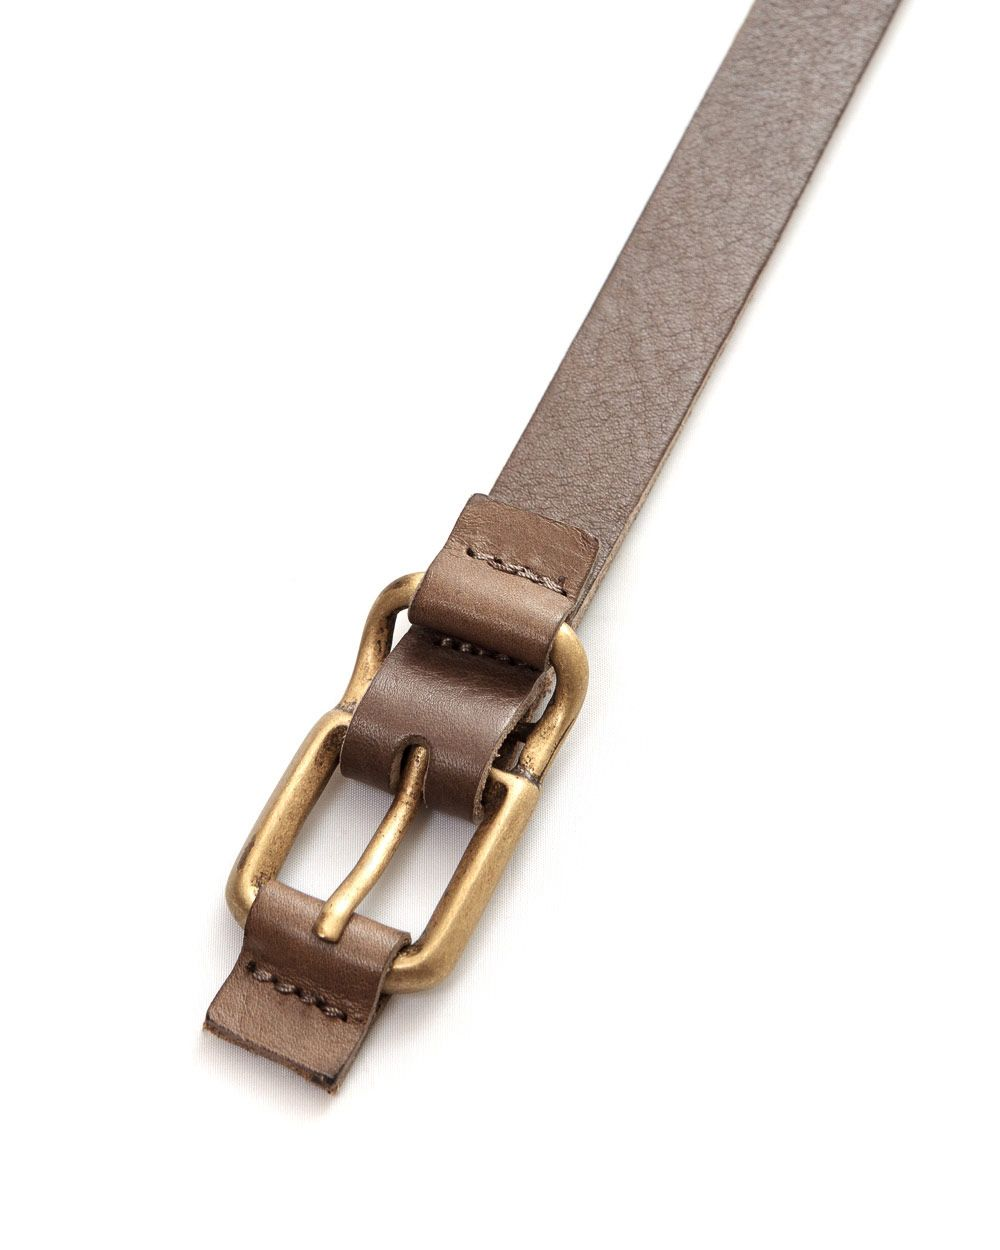 Tab leather trousers belt